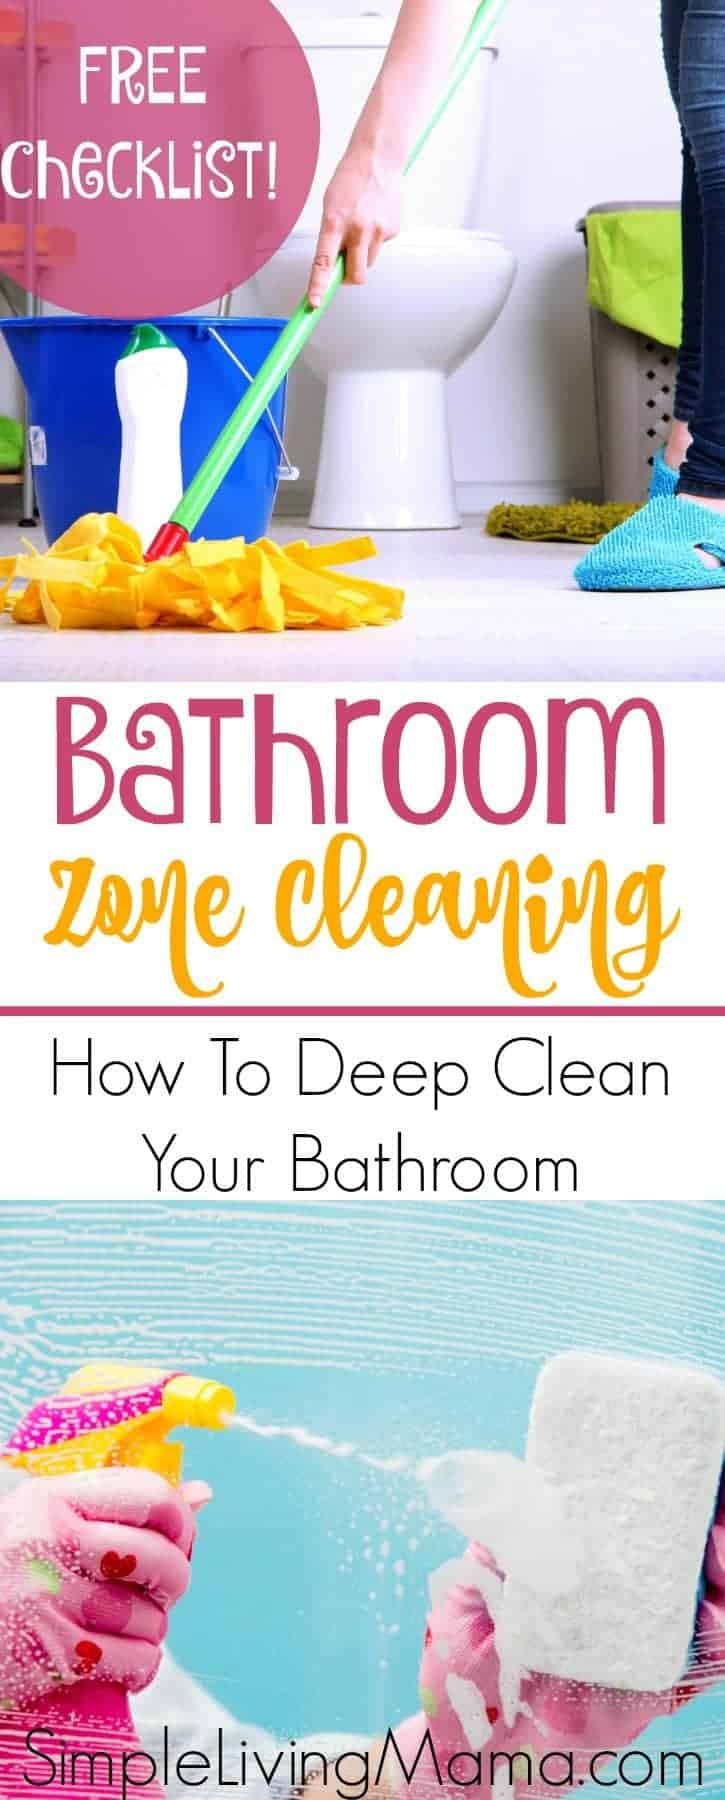 Bathroom Zone Cleaning Routine How To Deep Clean Your Bathroom Simple Living Mama